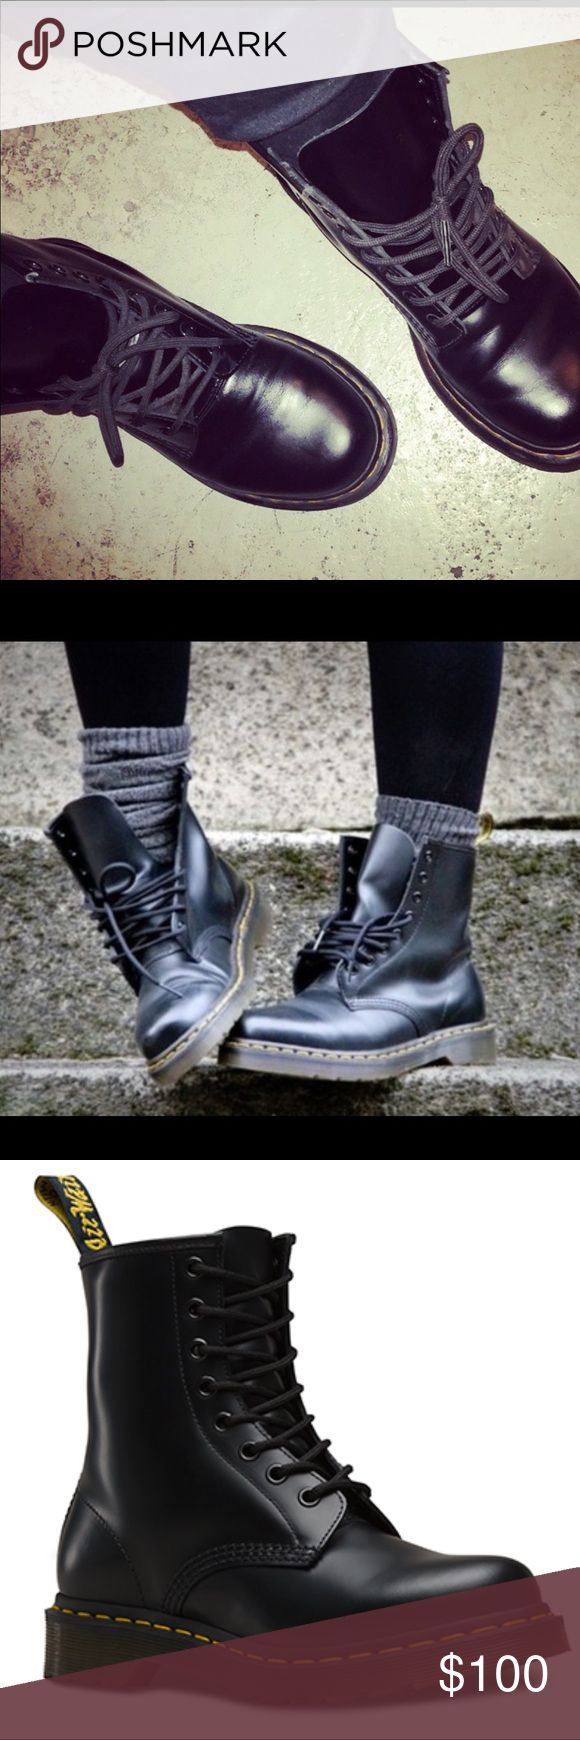 Women's 8 eye 1460 Dr. Martens Airwair Boot EUC: (no box) women's 8 eye 1460 Dr. Marten boot. This is the matte black--NOT patent. This boot is understatedly a must have in every closet--you'd be surprised how many moments you need that black combat style boot! These are in extremely good condition, I have a thing about shoes. I don't like getting my shoes dirty 🙈 getting a near brand new boot that never goes on sale--on sale! They're still stiff and not broken in 😬 Dr. Martens Shoes…